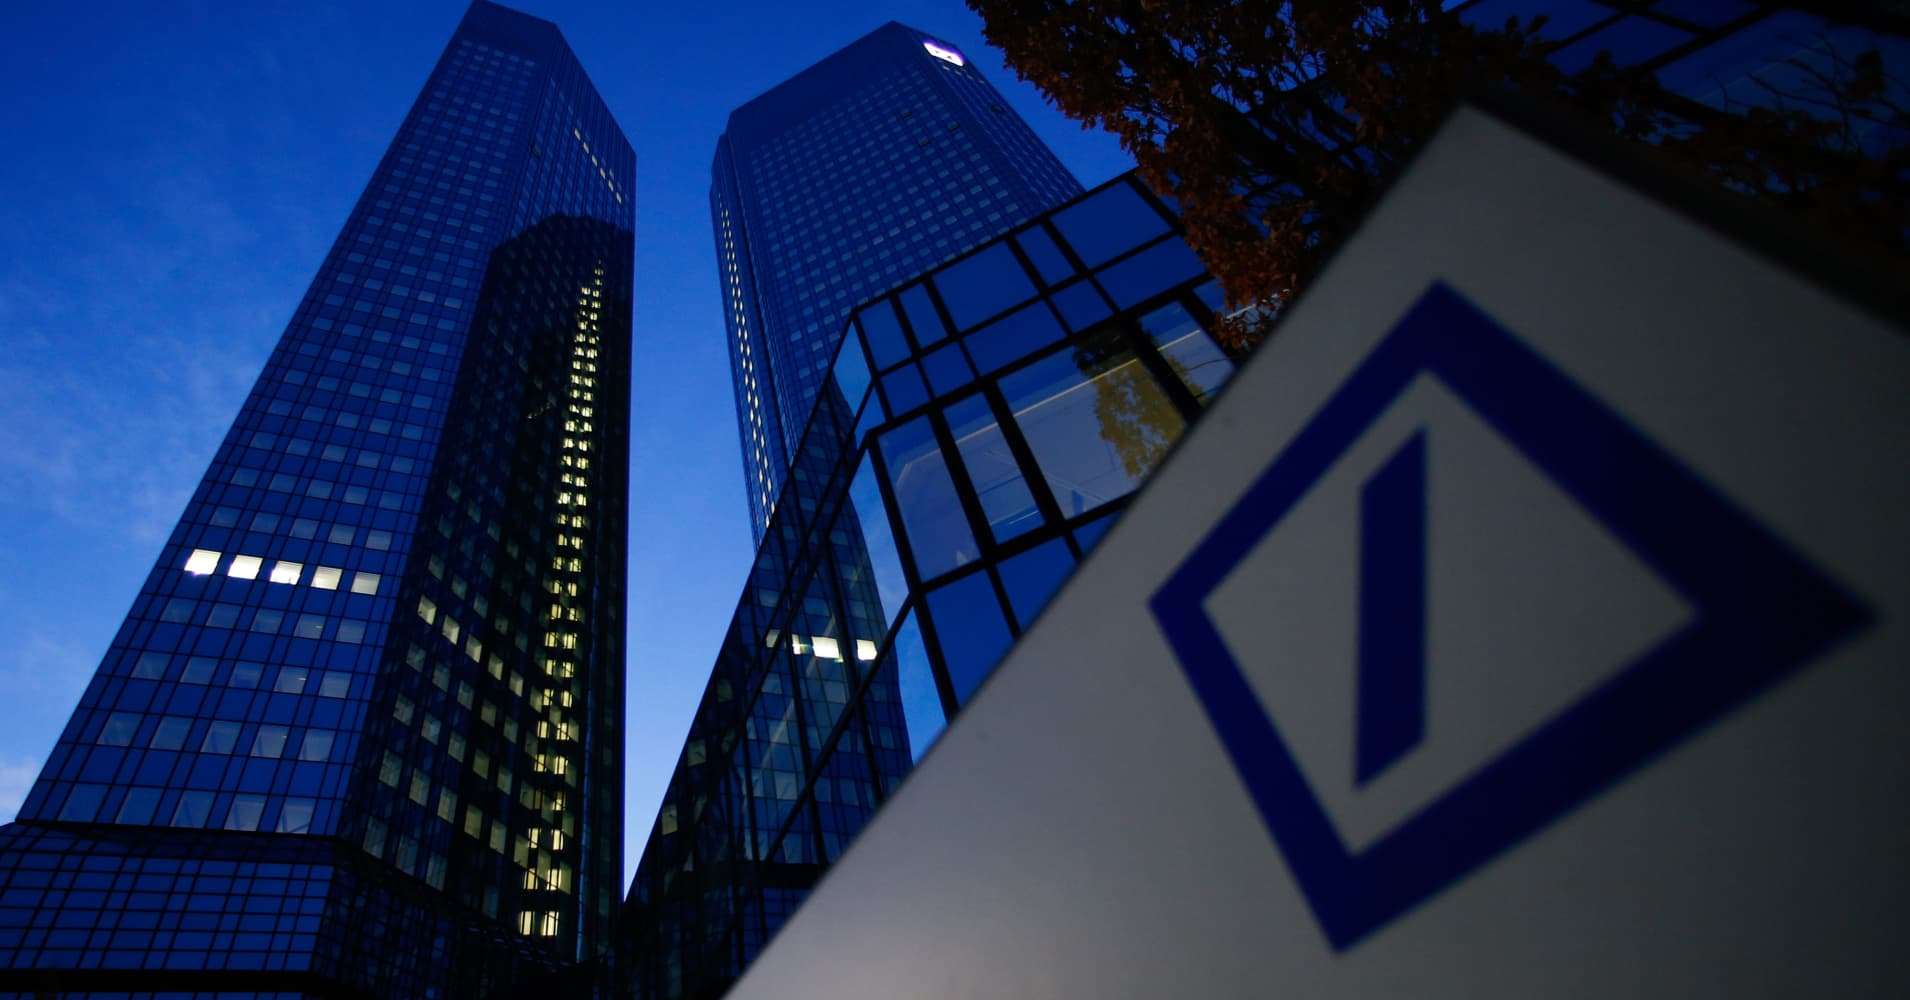 A secretive Chinese conglomerate HNA Group is taking top stake in Deutsche Bank